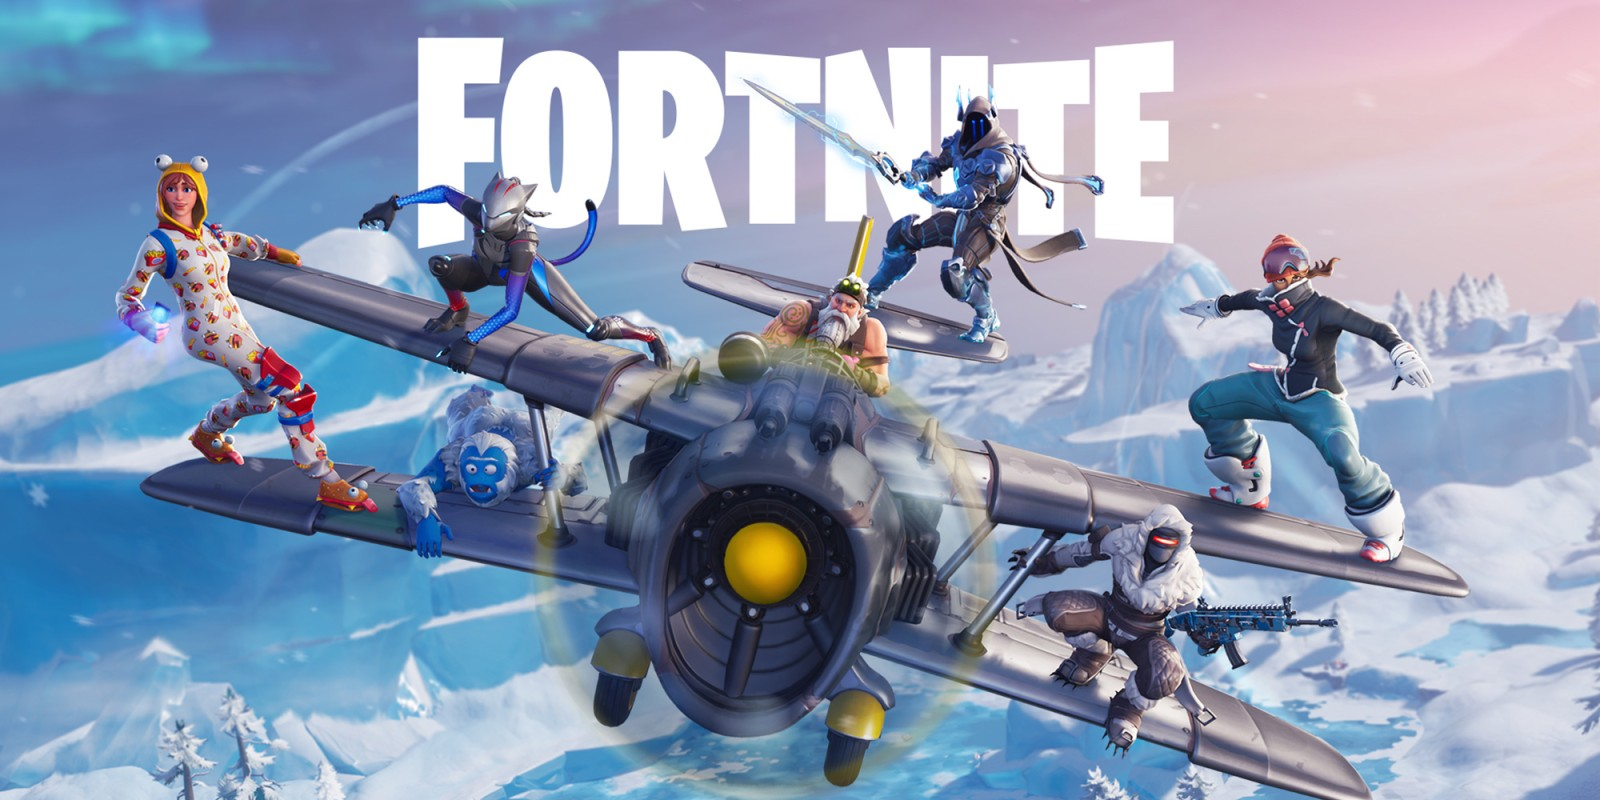 Fortnite Version 7.20